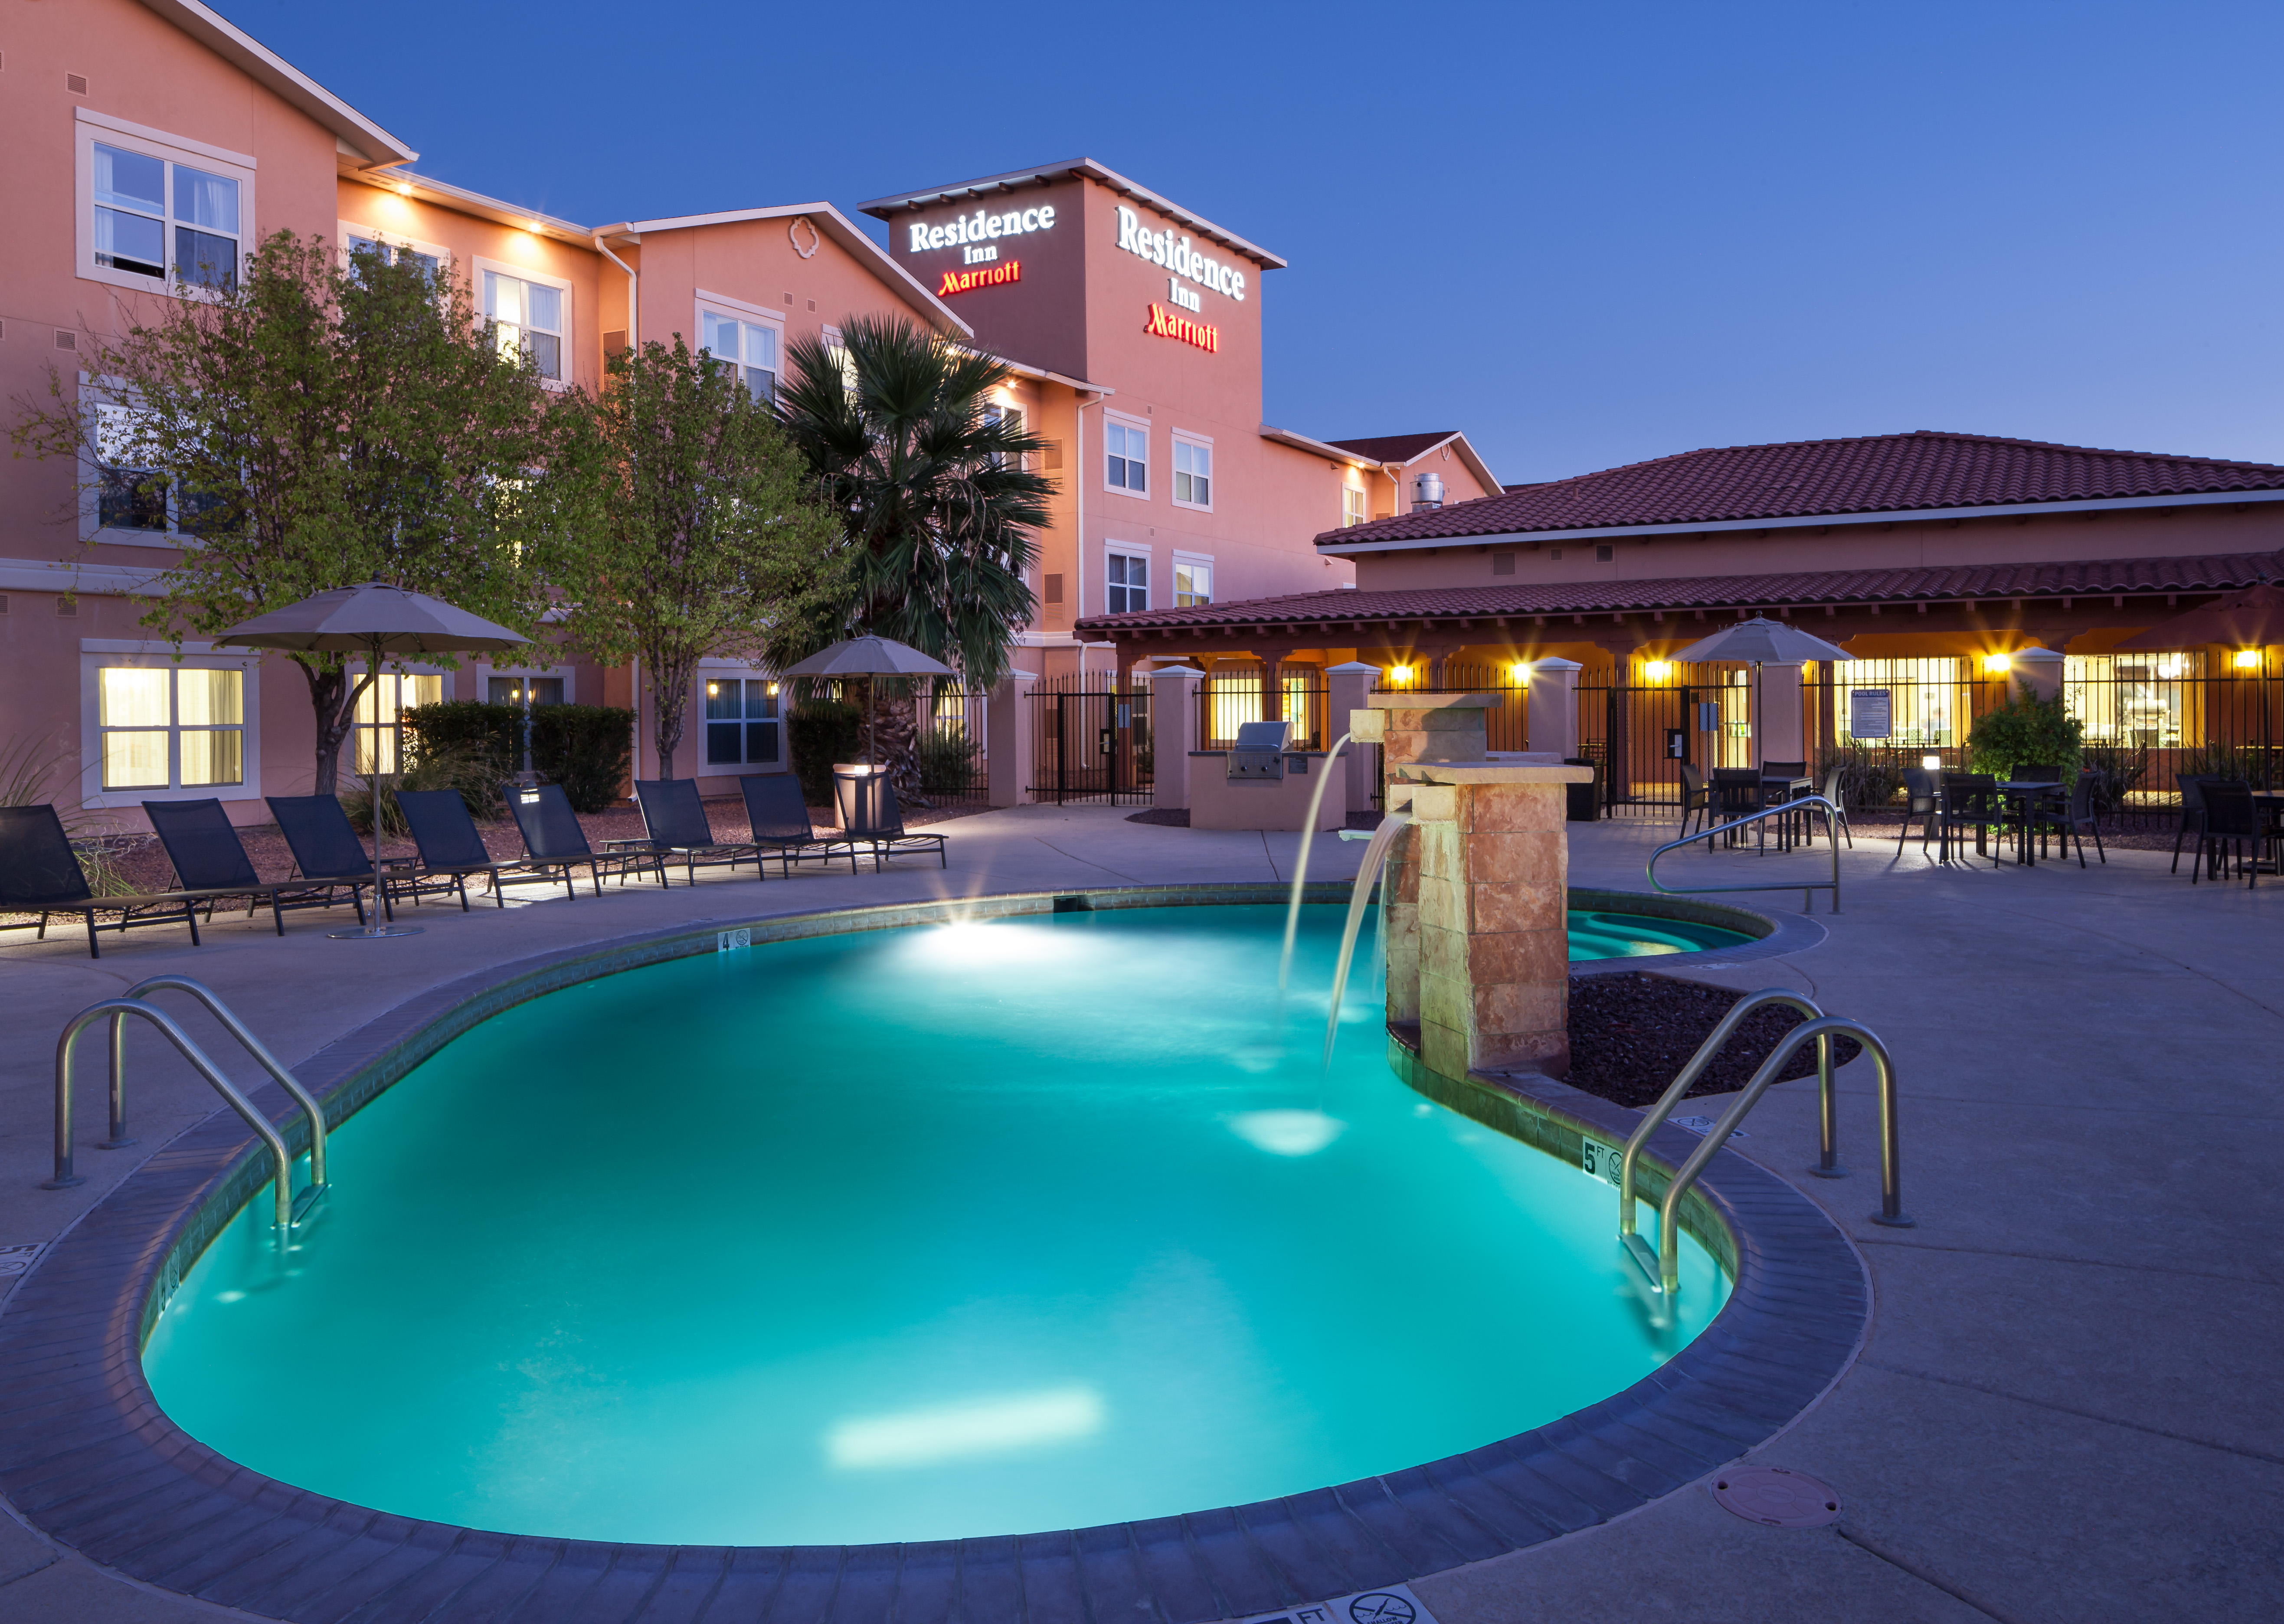 There's a modern, fresh new look at the Residence Inn Tucson Airport with amenities for millennial travelers.